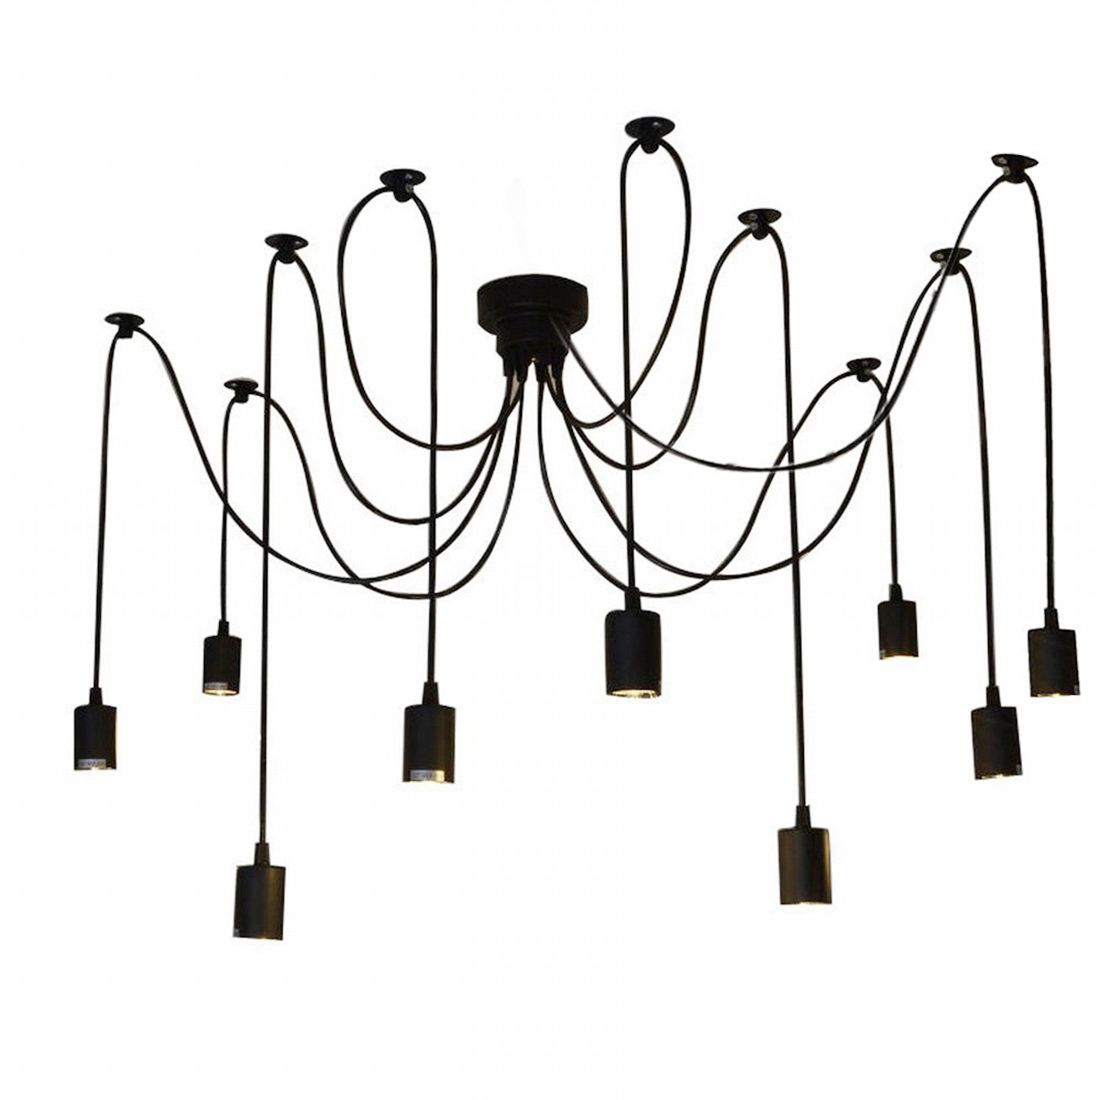 9 Lights E27 DIY Ceiling Spider Pendant Lamp Shade Light Antique Classic Adjustable Retro Chandelier Dining Hall Bedroom Home Li 9lights e27 diy ceiling spider pendant lamp shade light antique classic adjustable retro chandelier dining home lighting fixture